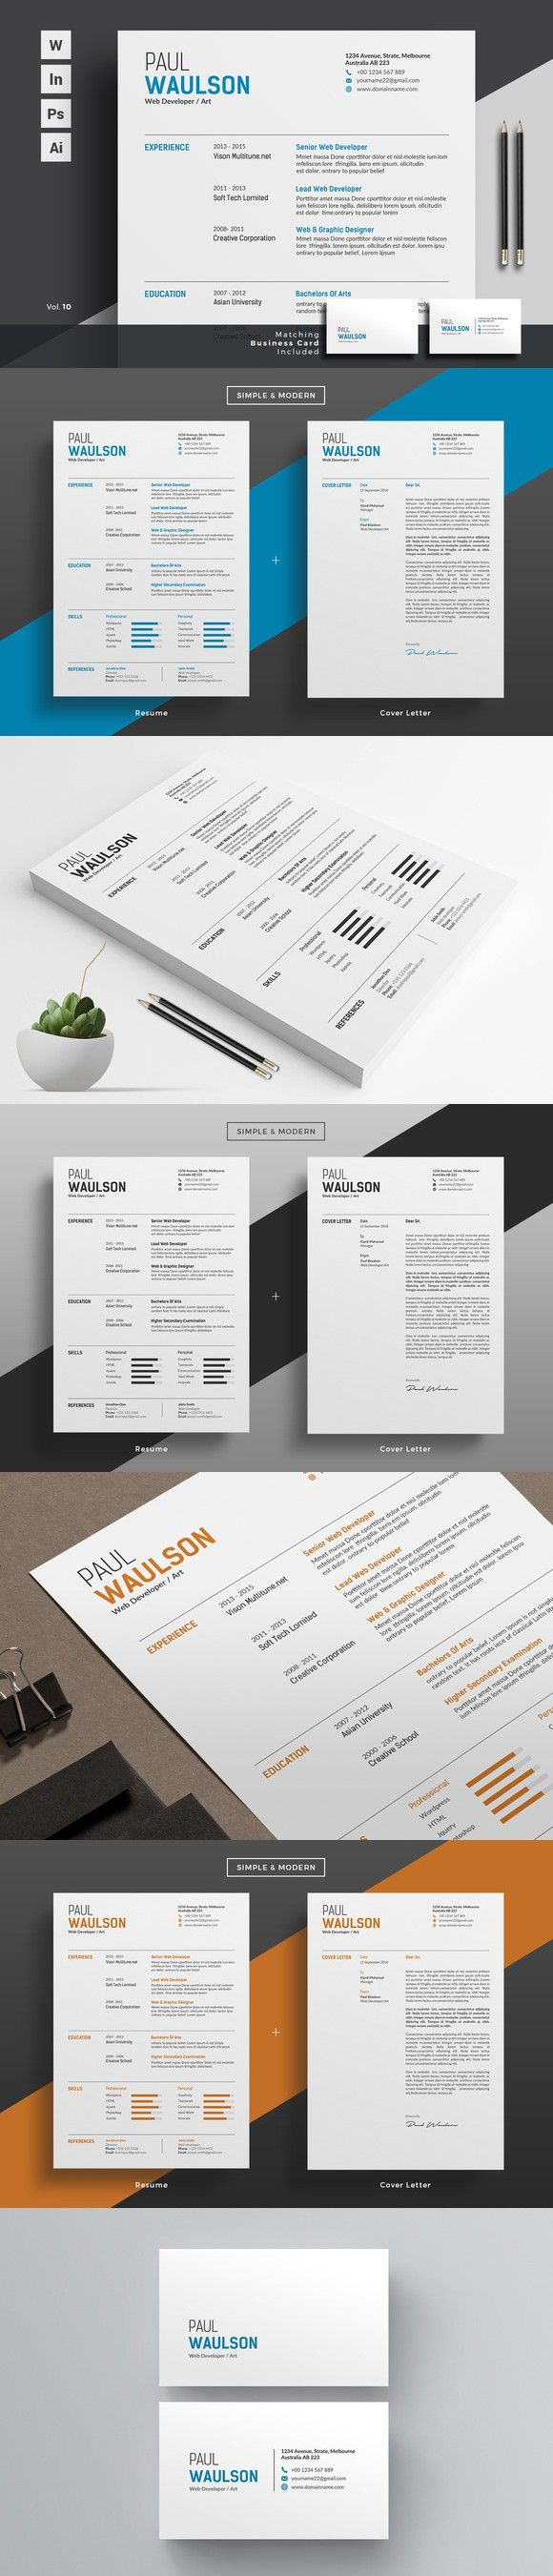 Professional Resume CV Word. Business Infographic